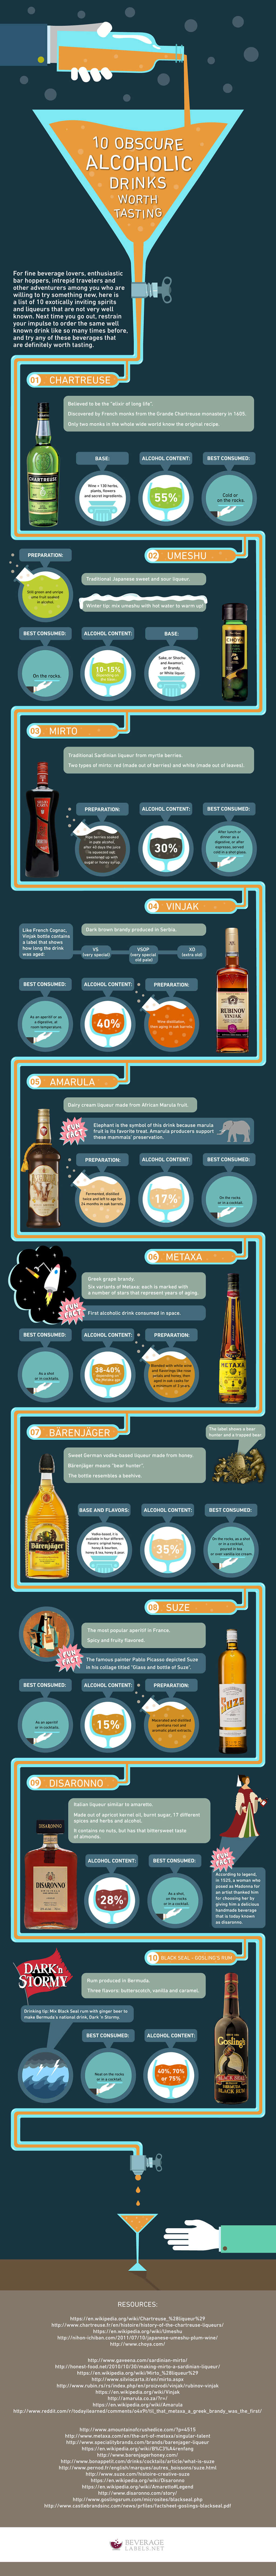 Infographic: 10 obscure alcoholic drinks worth tasting